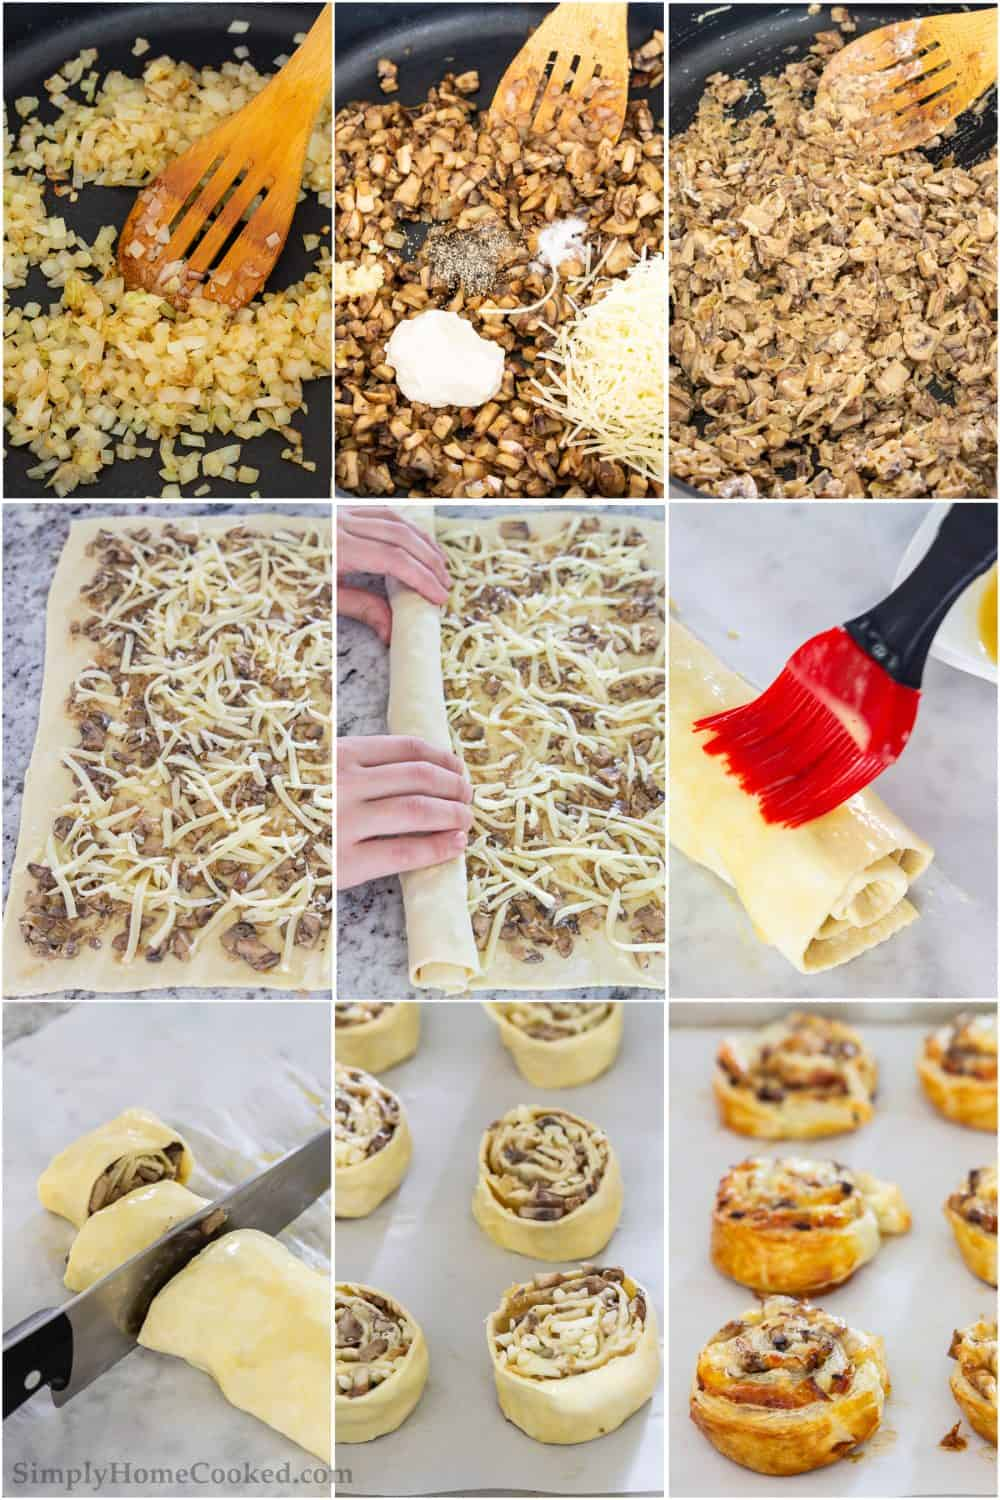 Step by step picture collage of how to prepare the mushroom puff pastry pinwheels including cooking vegetables, mixing together and loading onto puff pastry prior to baking.